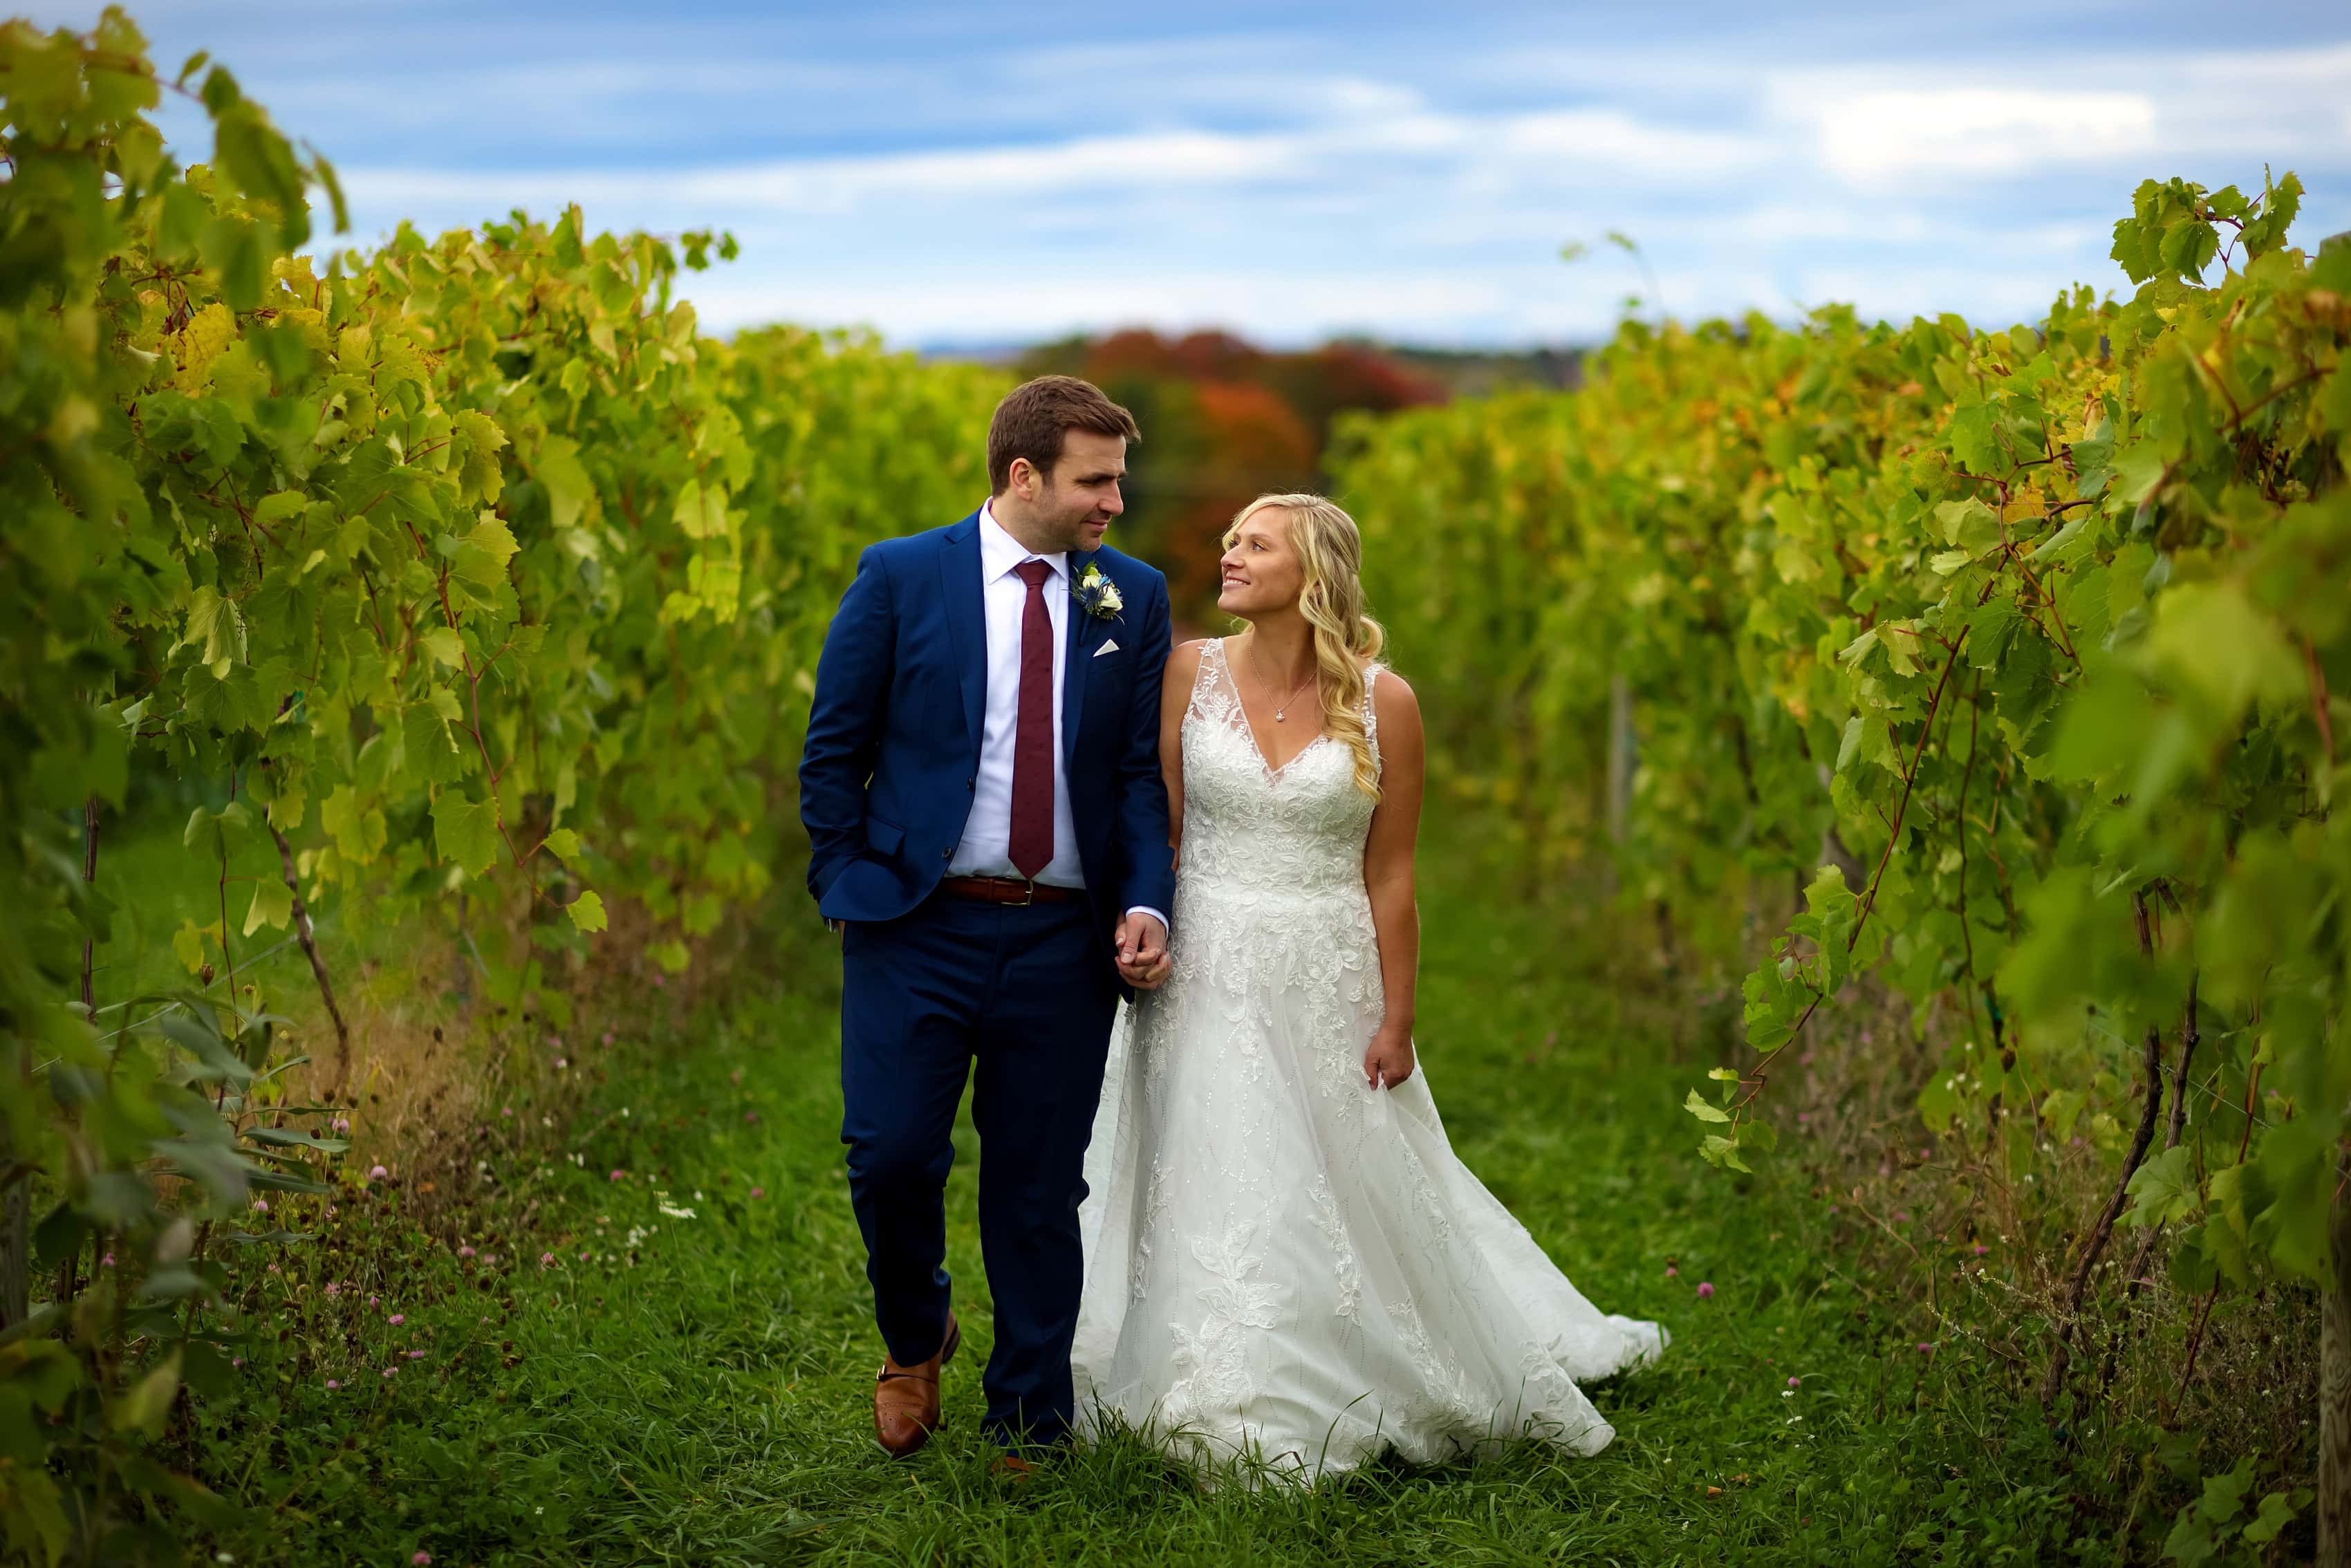 bride and groom walk through vineyard for wedding portraits at Petoskey Farms Vineyard & Winery with fall colors in the background